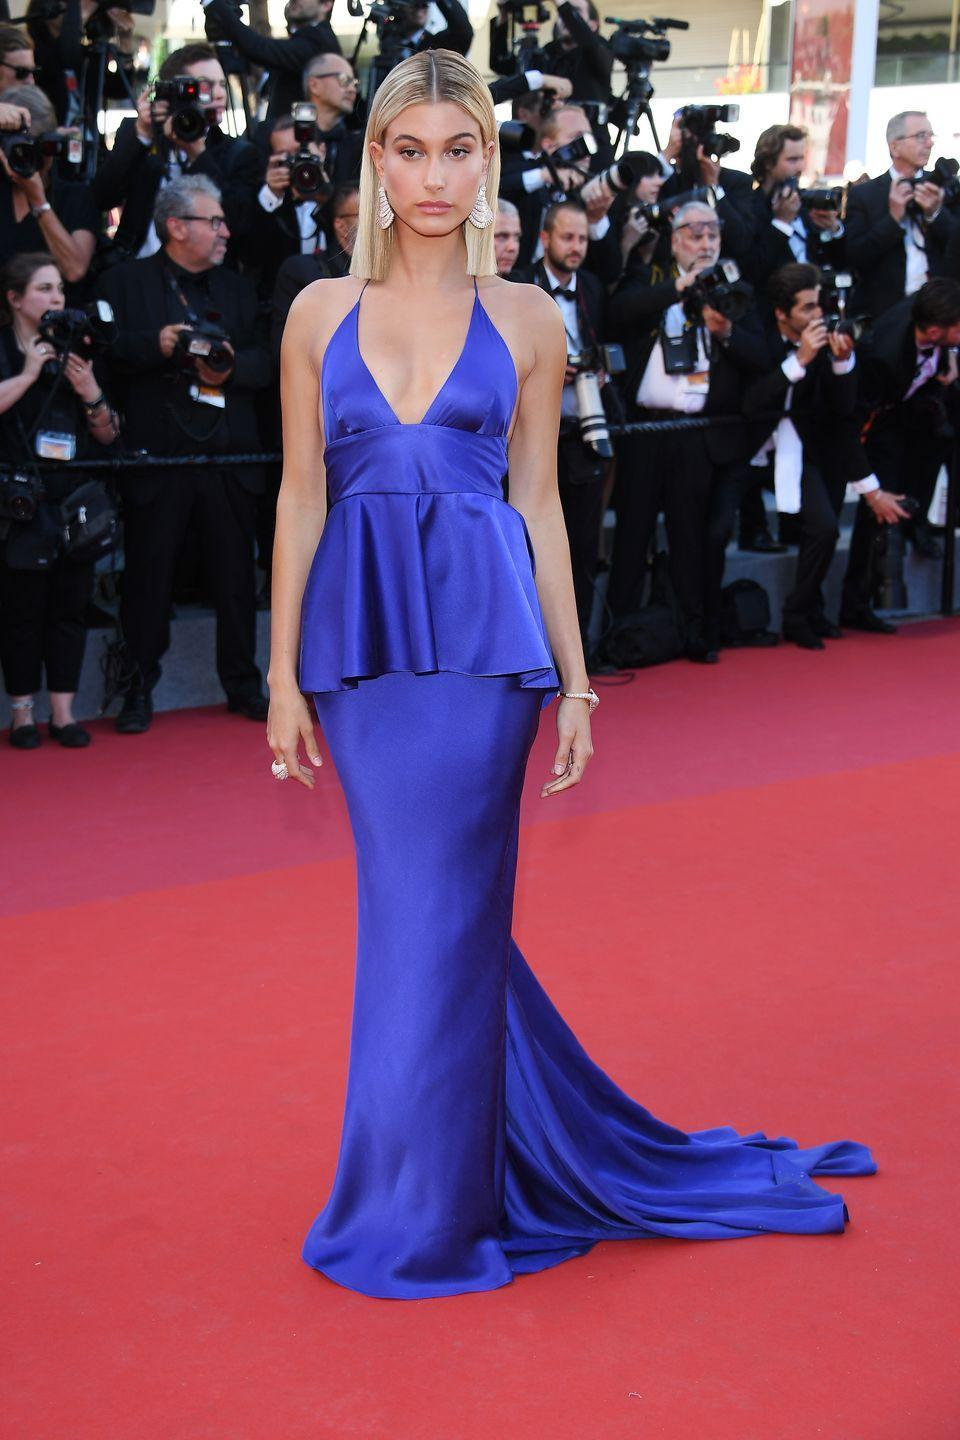 "<p>Hailey Baldwin<span class=""redactor-invisible-space""> wore an electric blue Twinset dress to attend the Ismael's Ghosts Cannes film premiere.</span></p>"